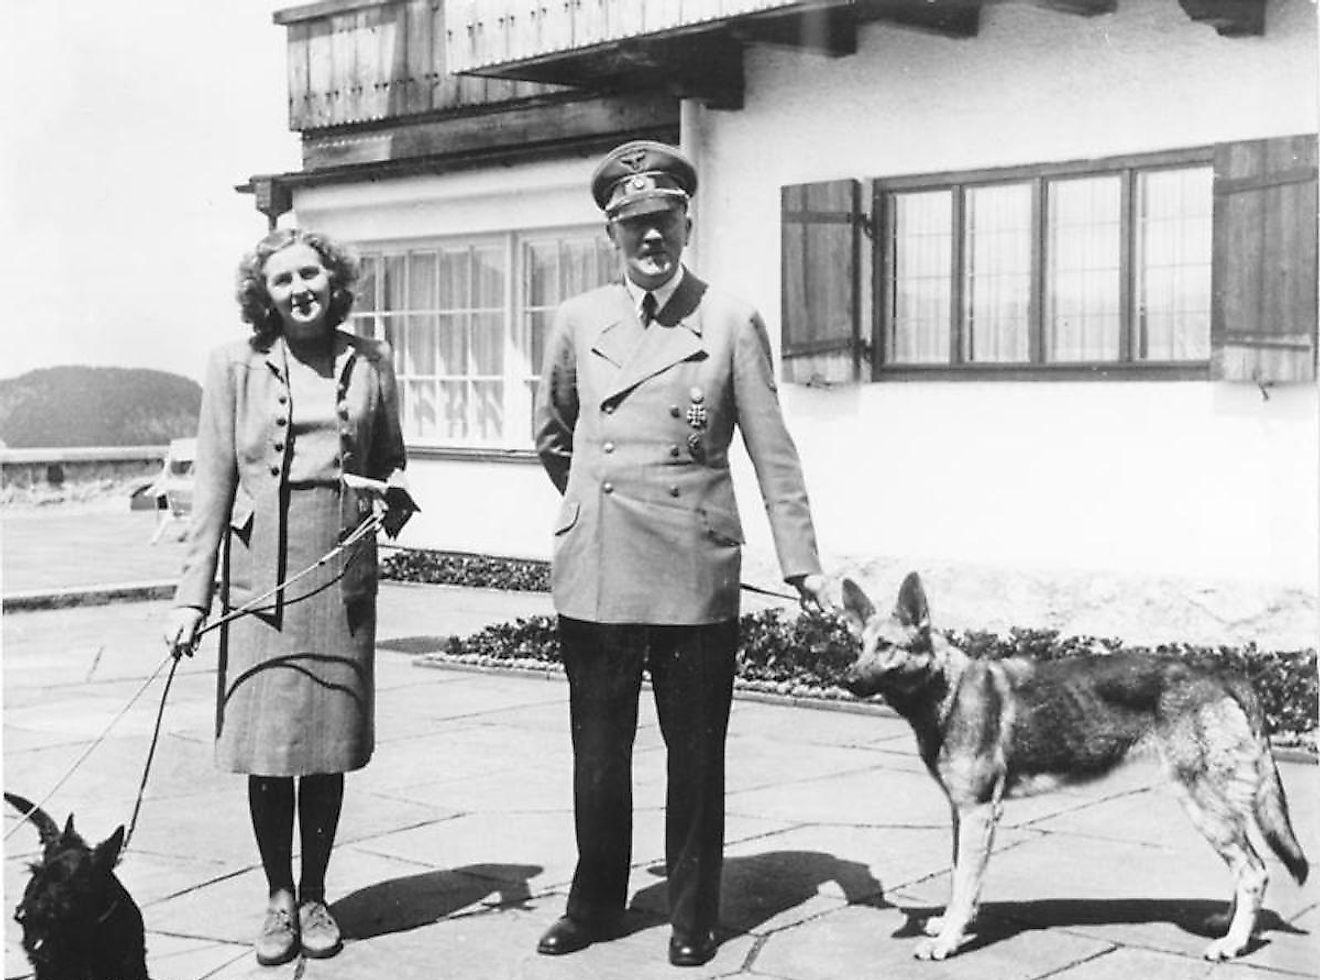 Despite repeated assassination attempts, Hitler survived till he took is own life. Eva Braun, his wife for 40 minutes and long-term companion, also committed suicide with him.